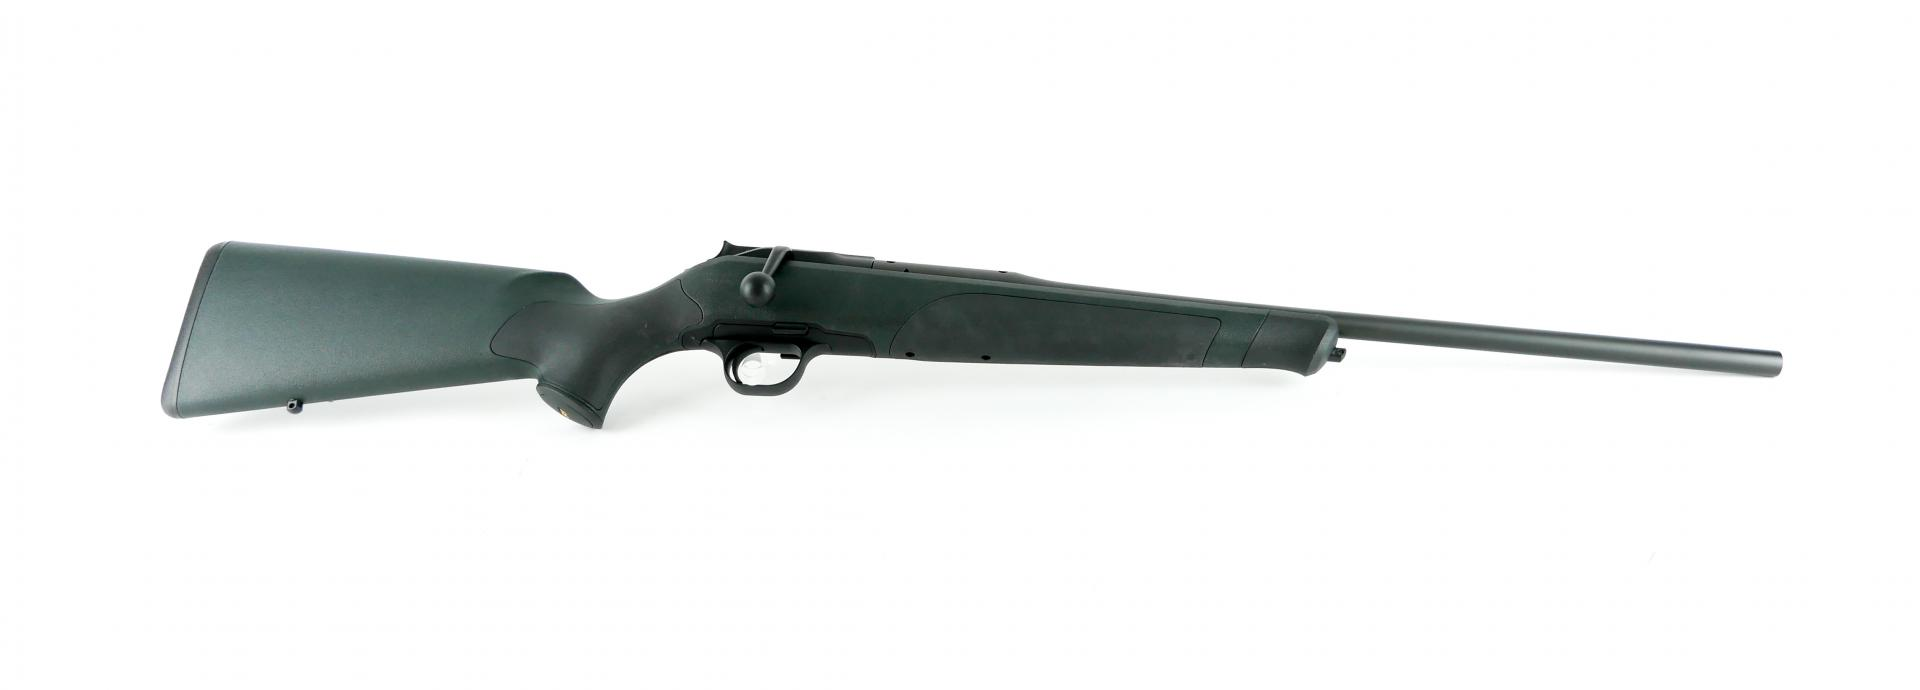 R8 Professional | 6.5 Creedmoor 22in Barrel, Straight Pull, Green Stock, Right Hand